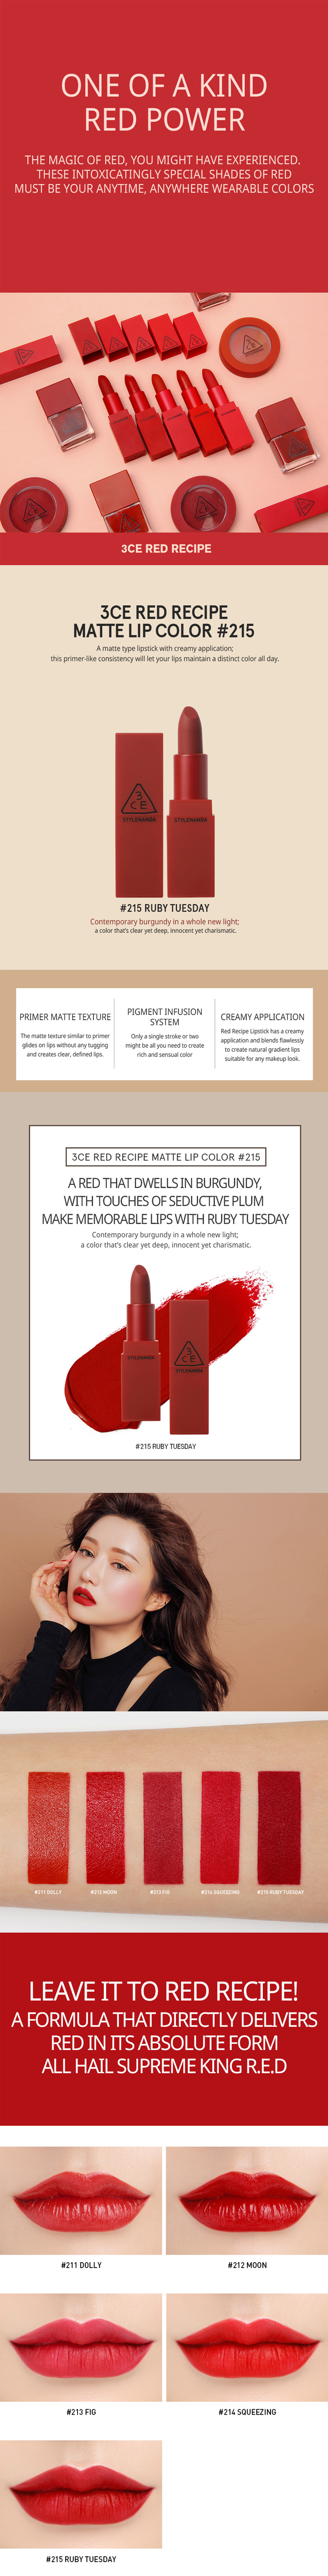 3ce Red Recipe Matte Lip Color